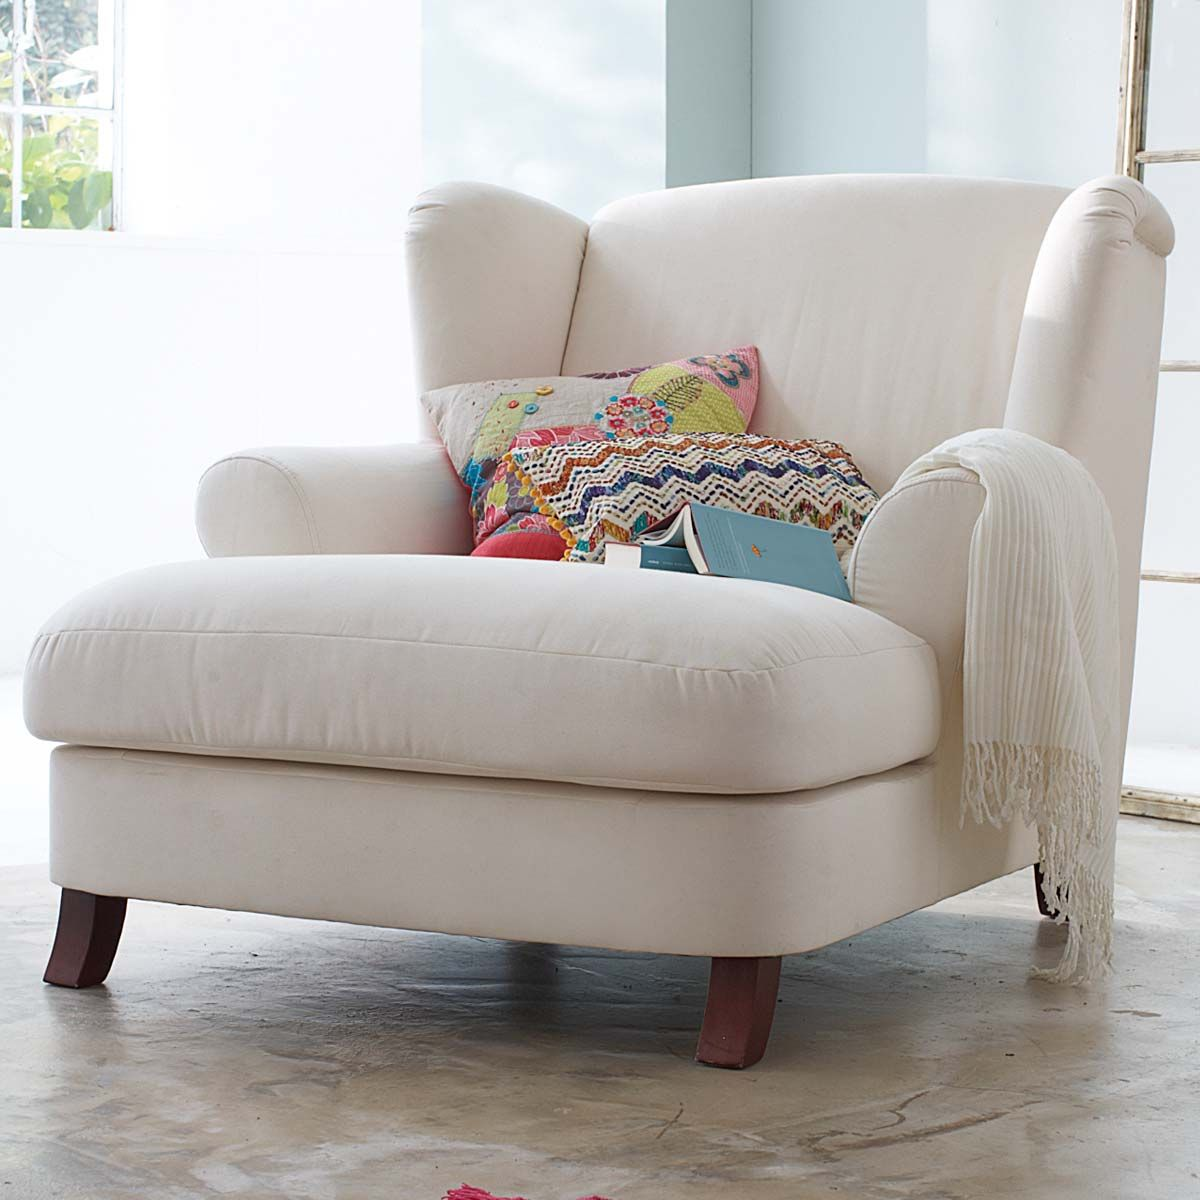 oversized bedroom chair covers to buy wholesale dream via somewhere north build a home comfy reading